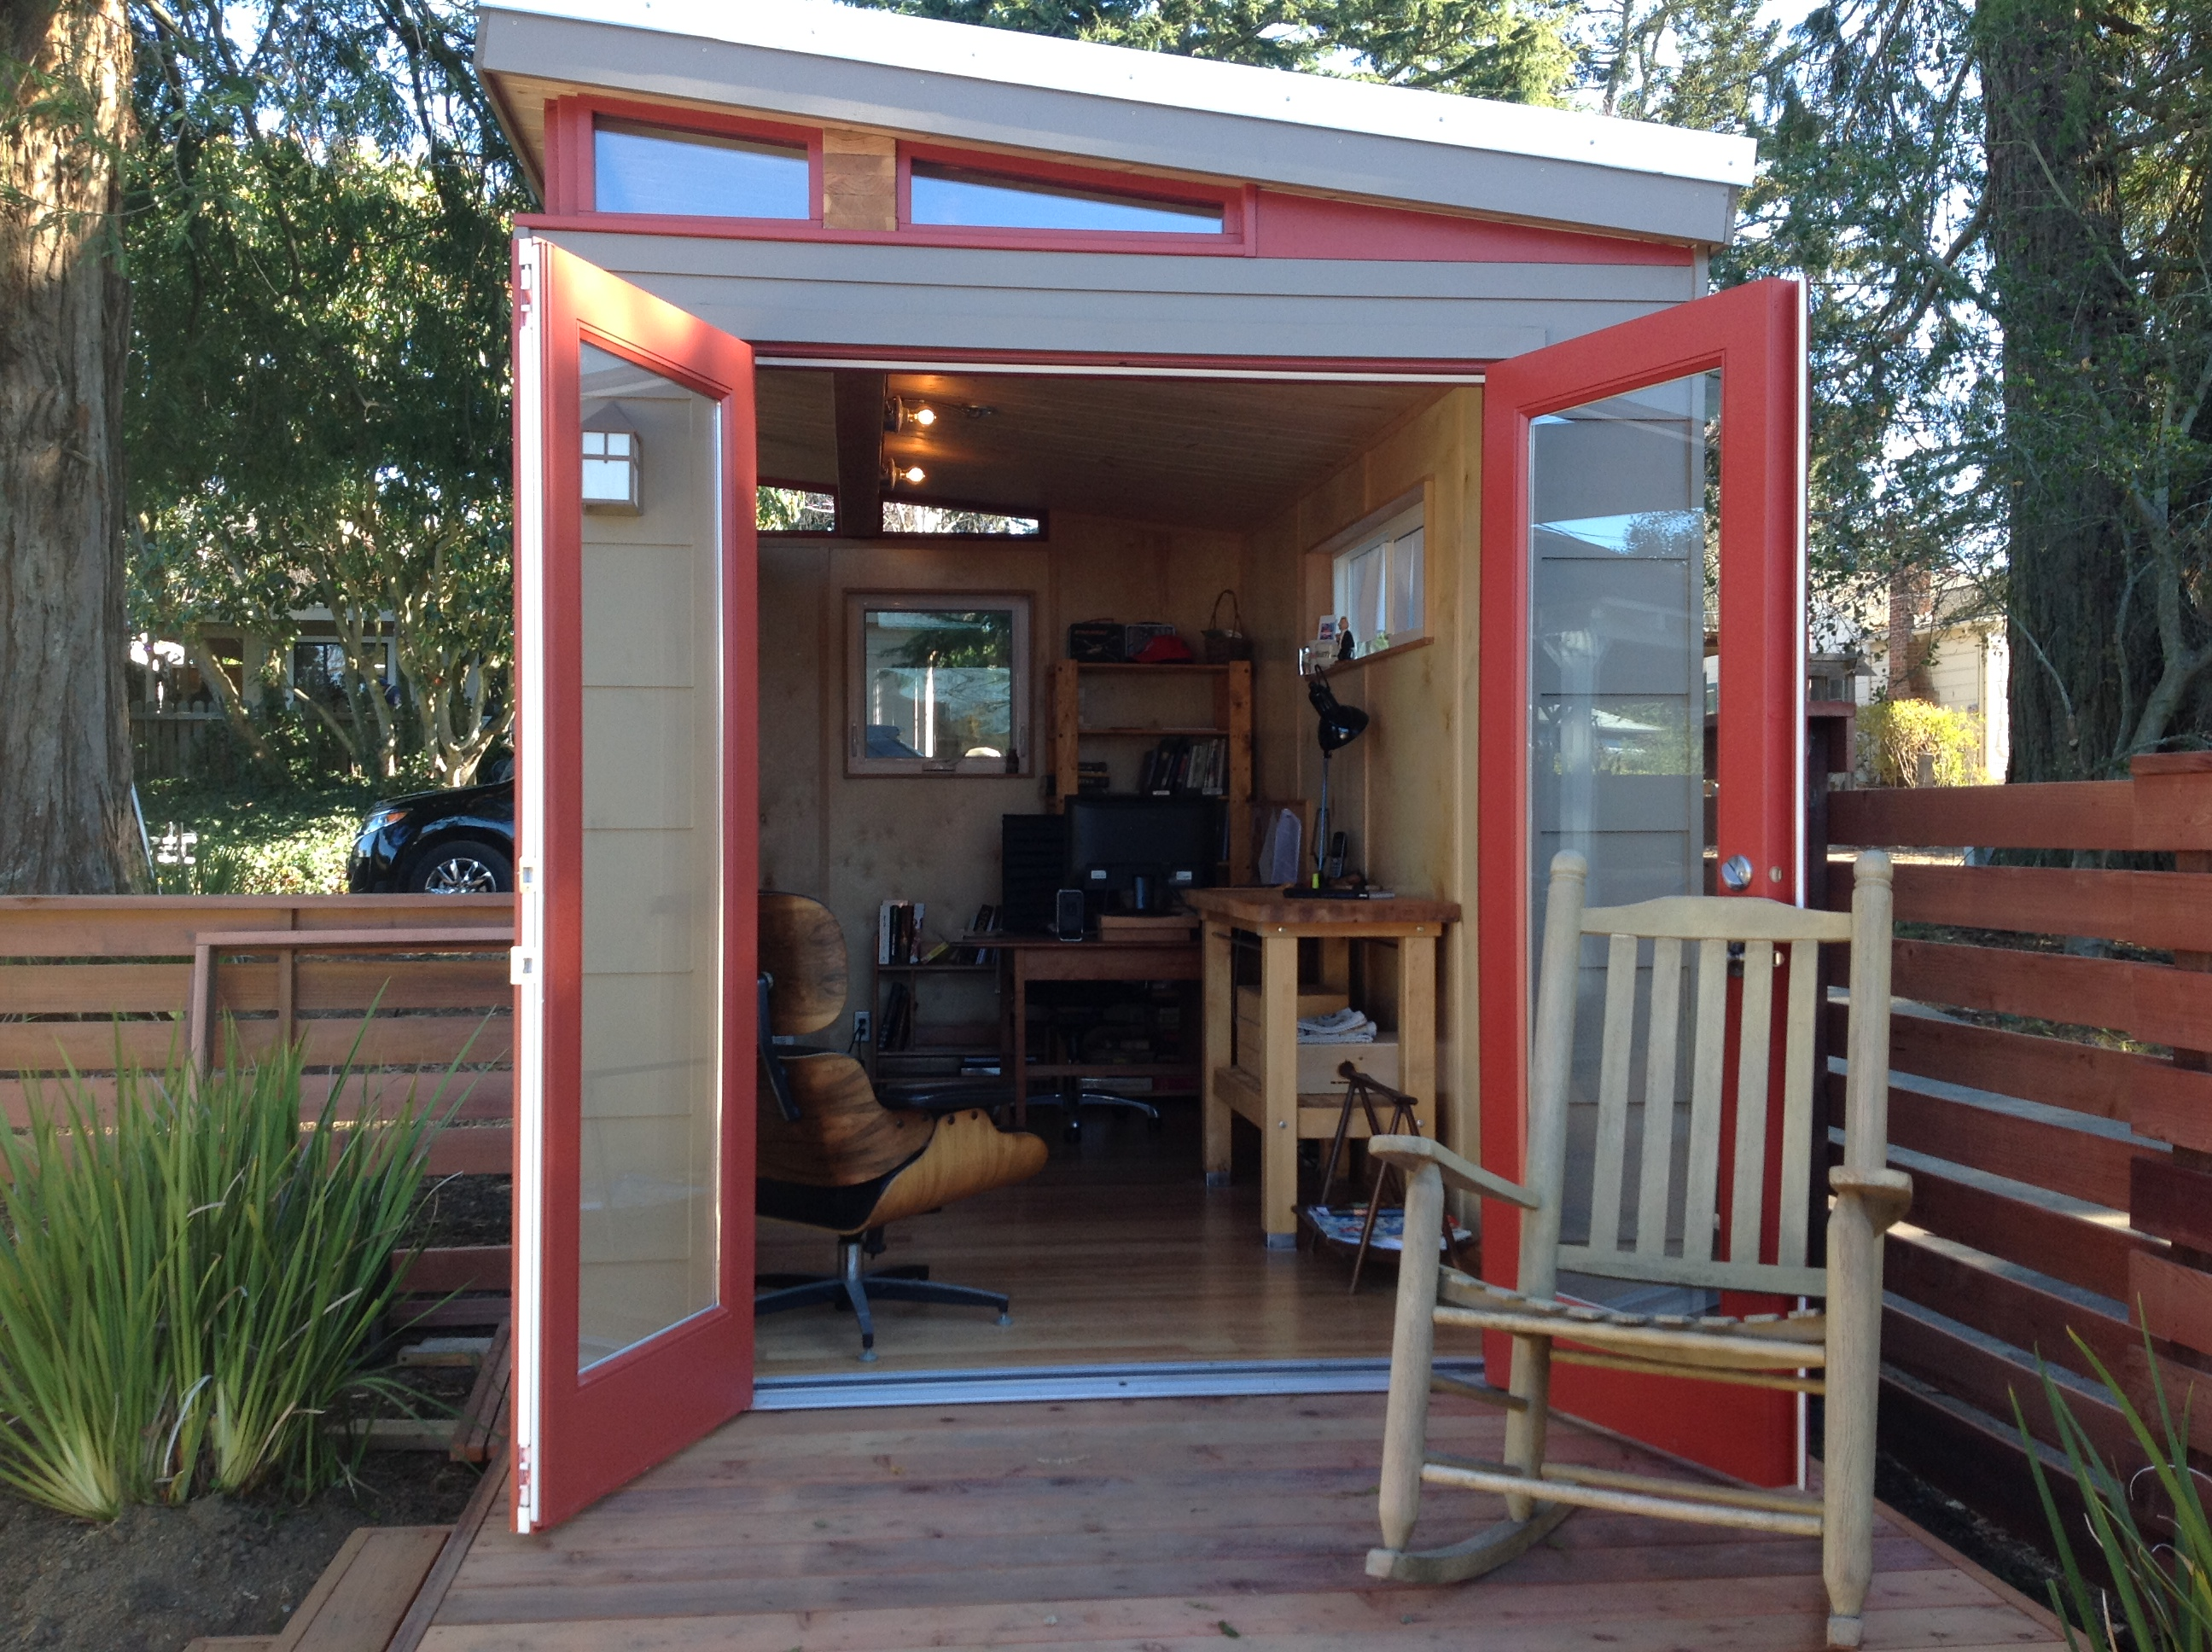 Mike Jones Uses His Modern Shed Home Office As A Place To Write And Work